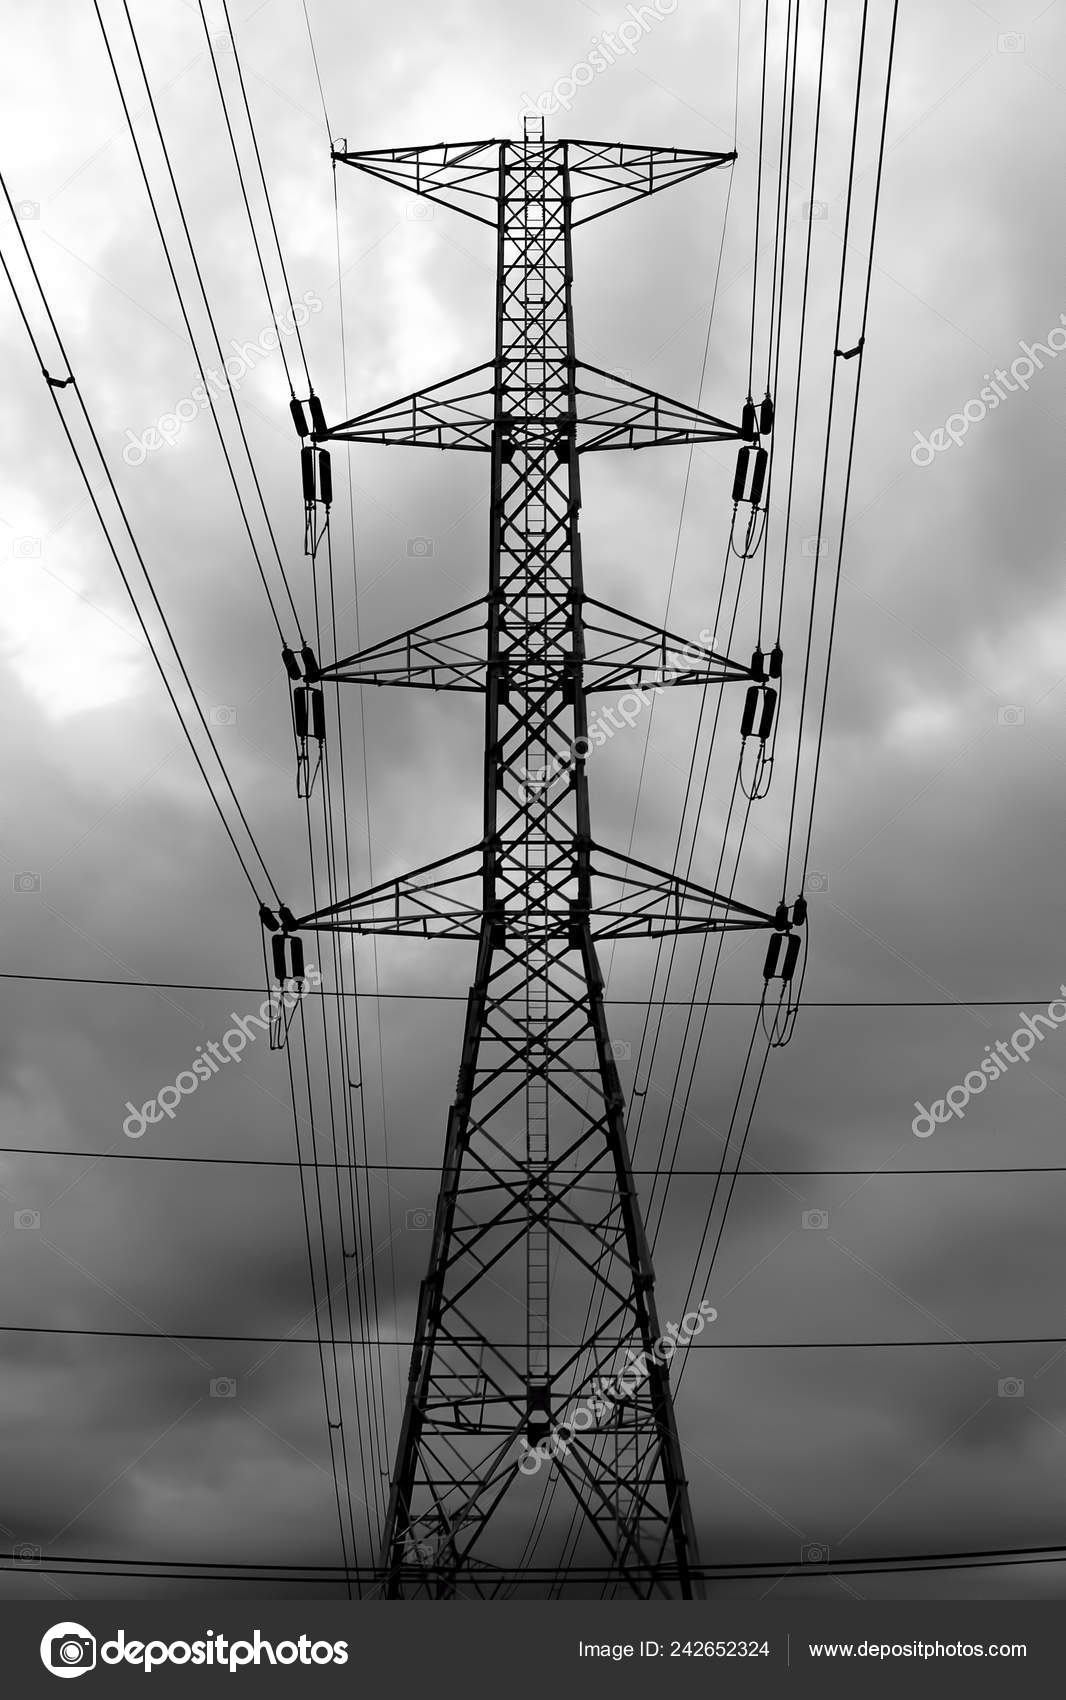 Electricity Transmission Pylon High Voltage Transmission Tower Silhouetted Black White Stock Photo Image By C Sarawutk 242652324